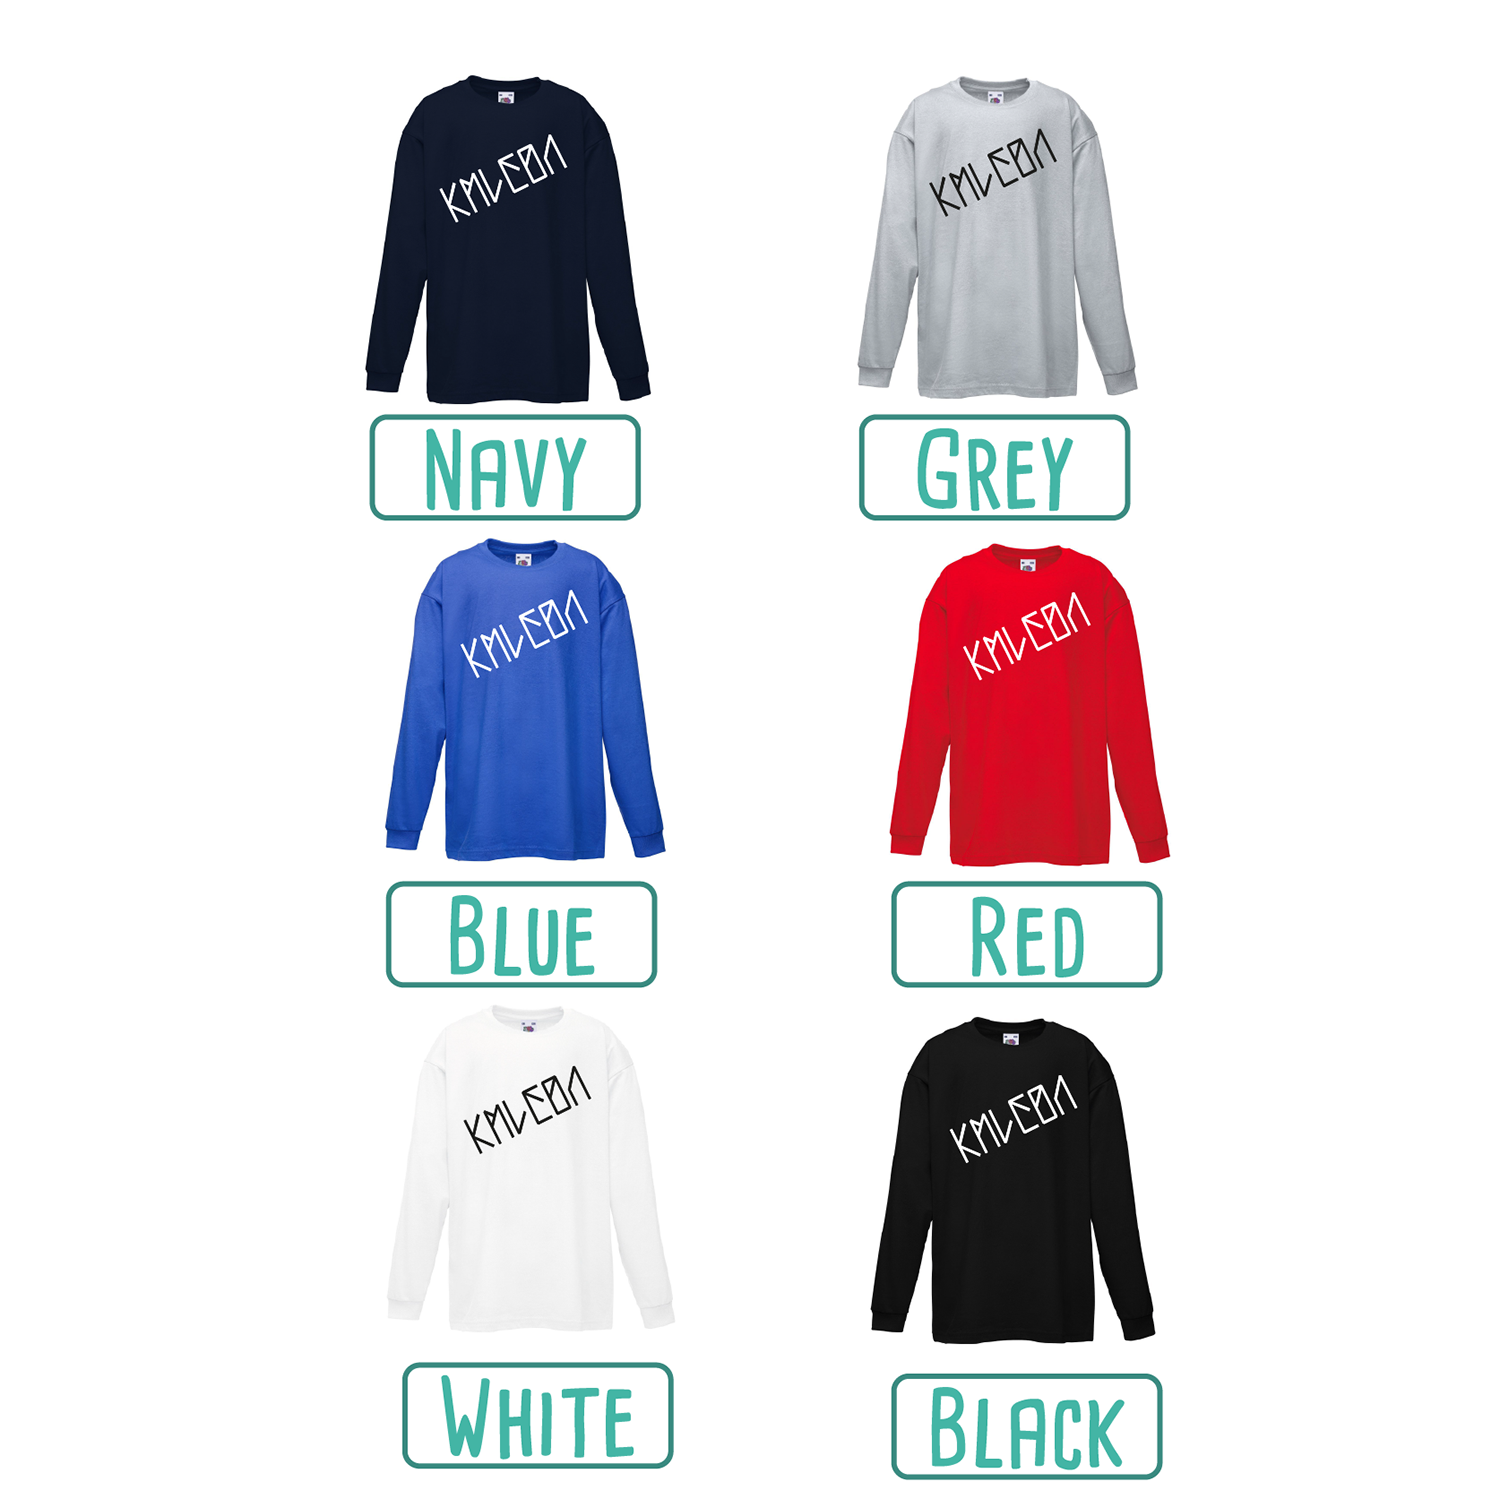 Colour options for kids shirts with long sleeves by KMLeon.